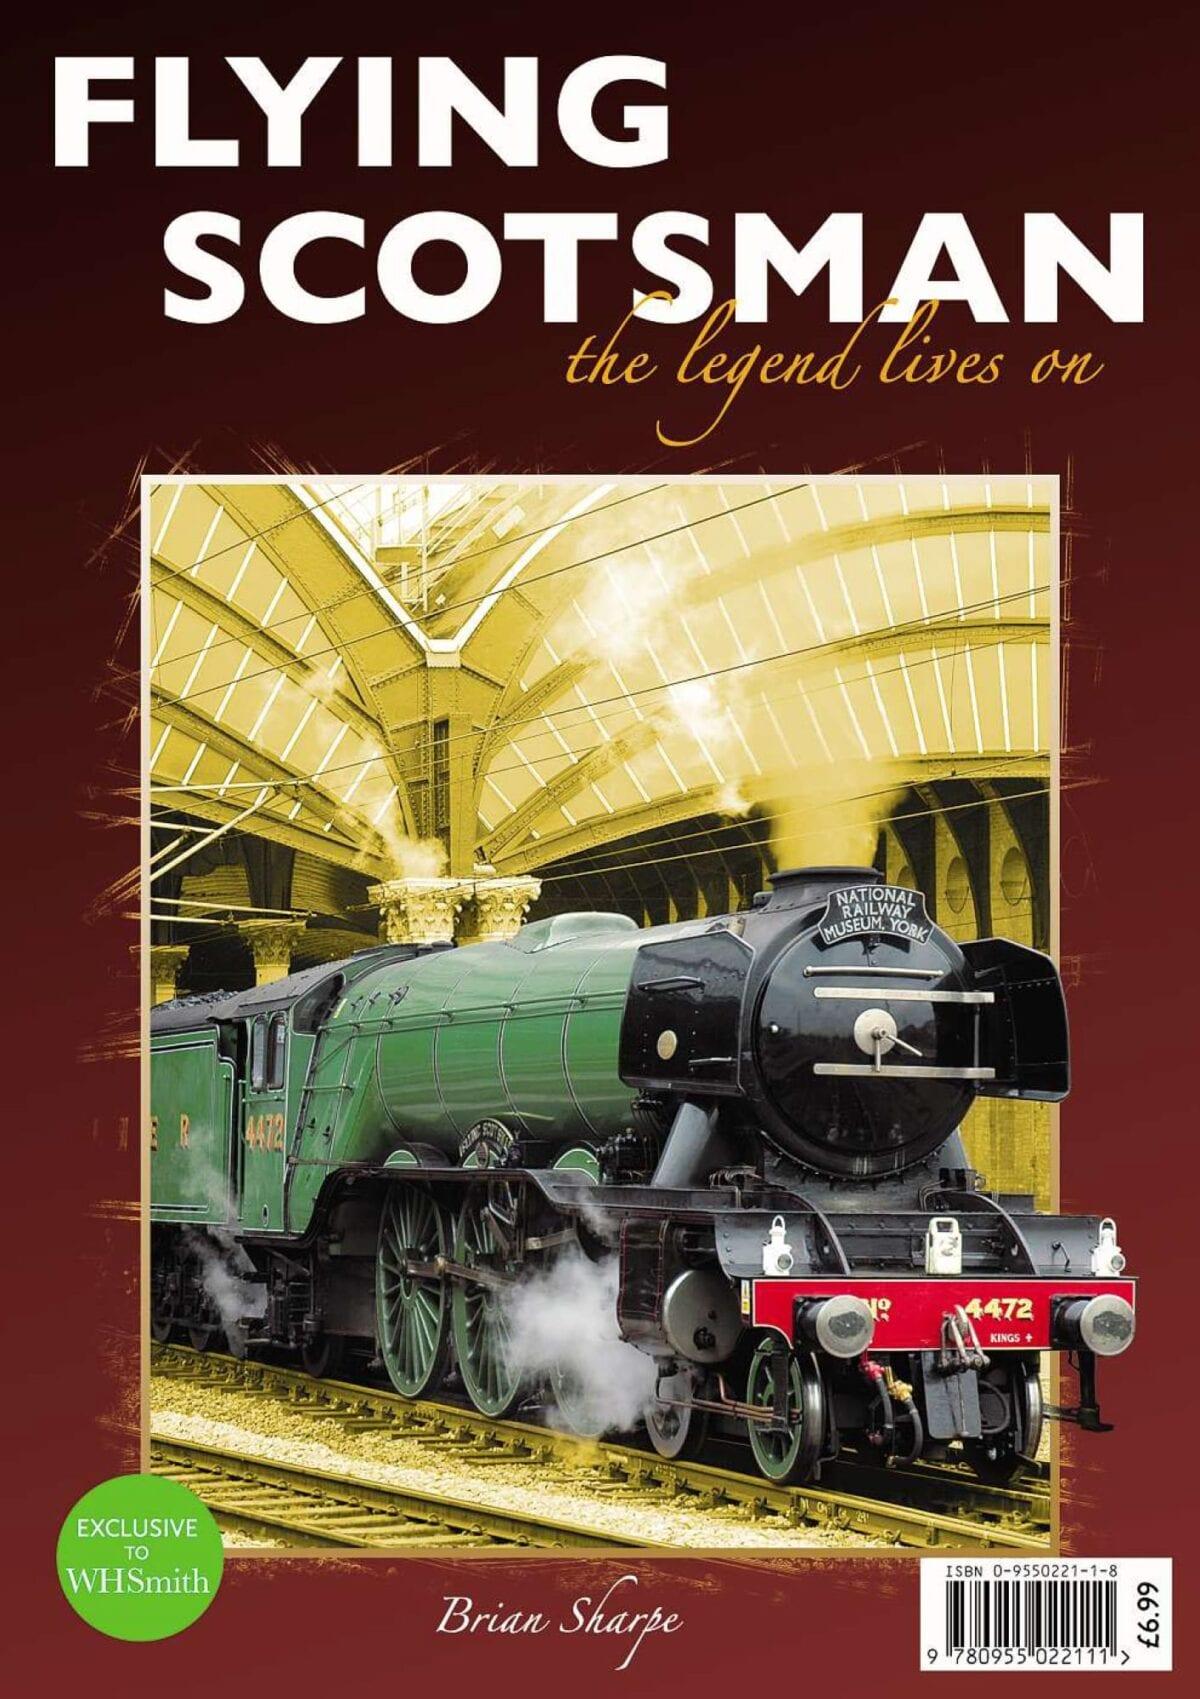 flyingscotsman - legend lives on-1